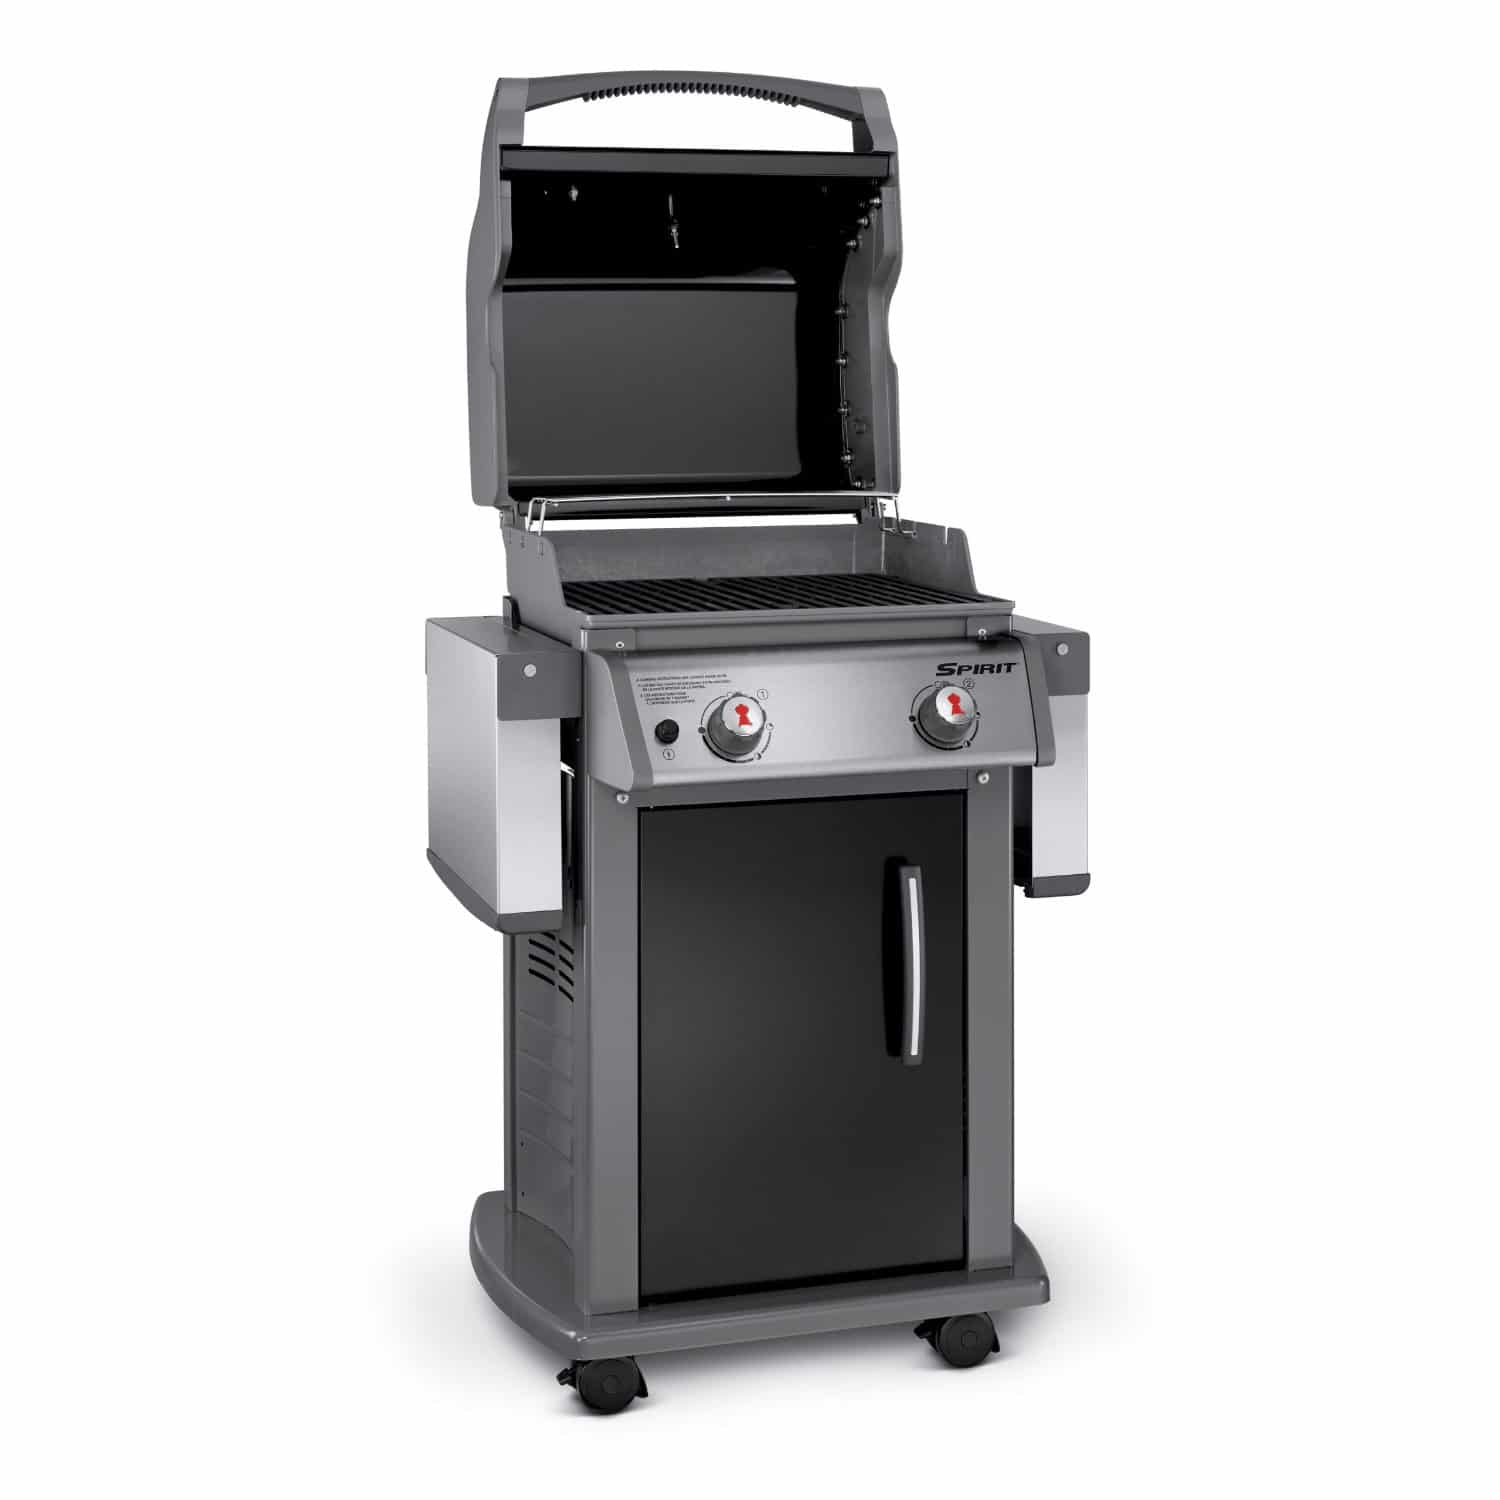 weber 46110001 spirit e210 liquid propane gas grill the. Black Bedroom Furniture Sets. Home Design Ideas